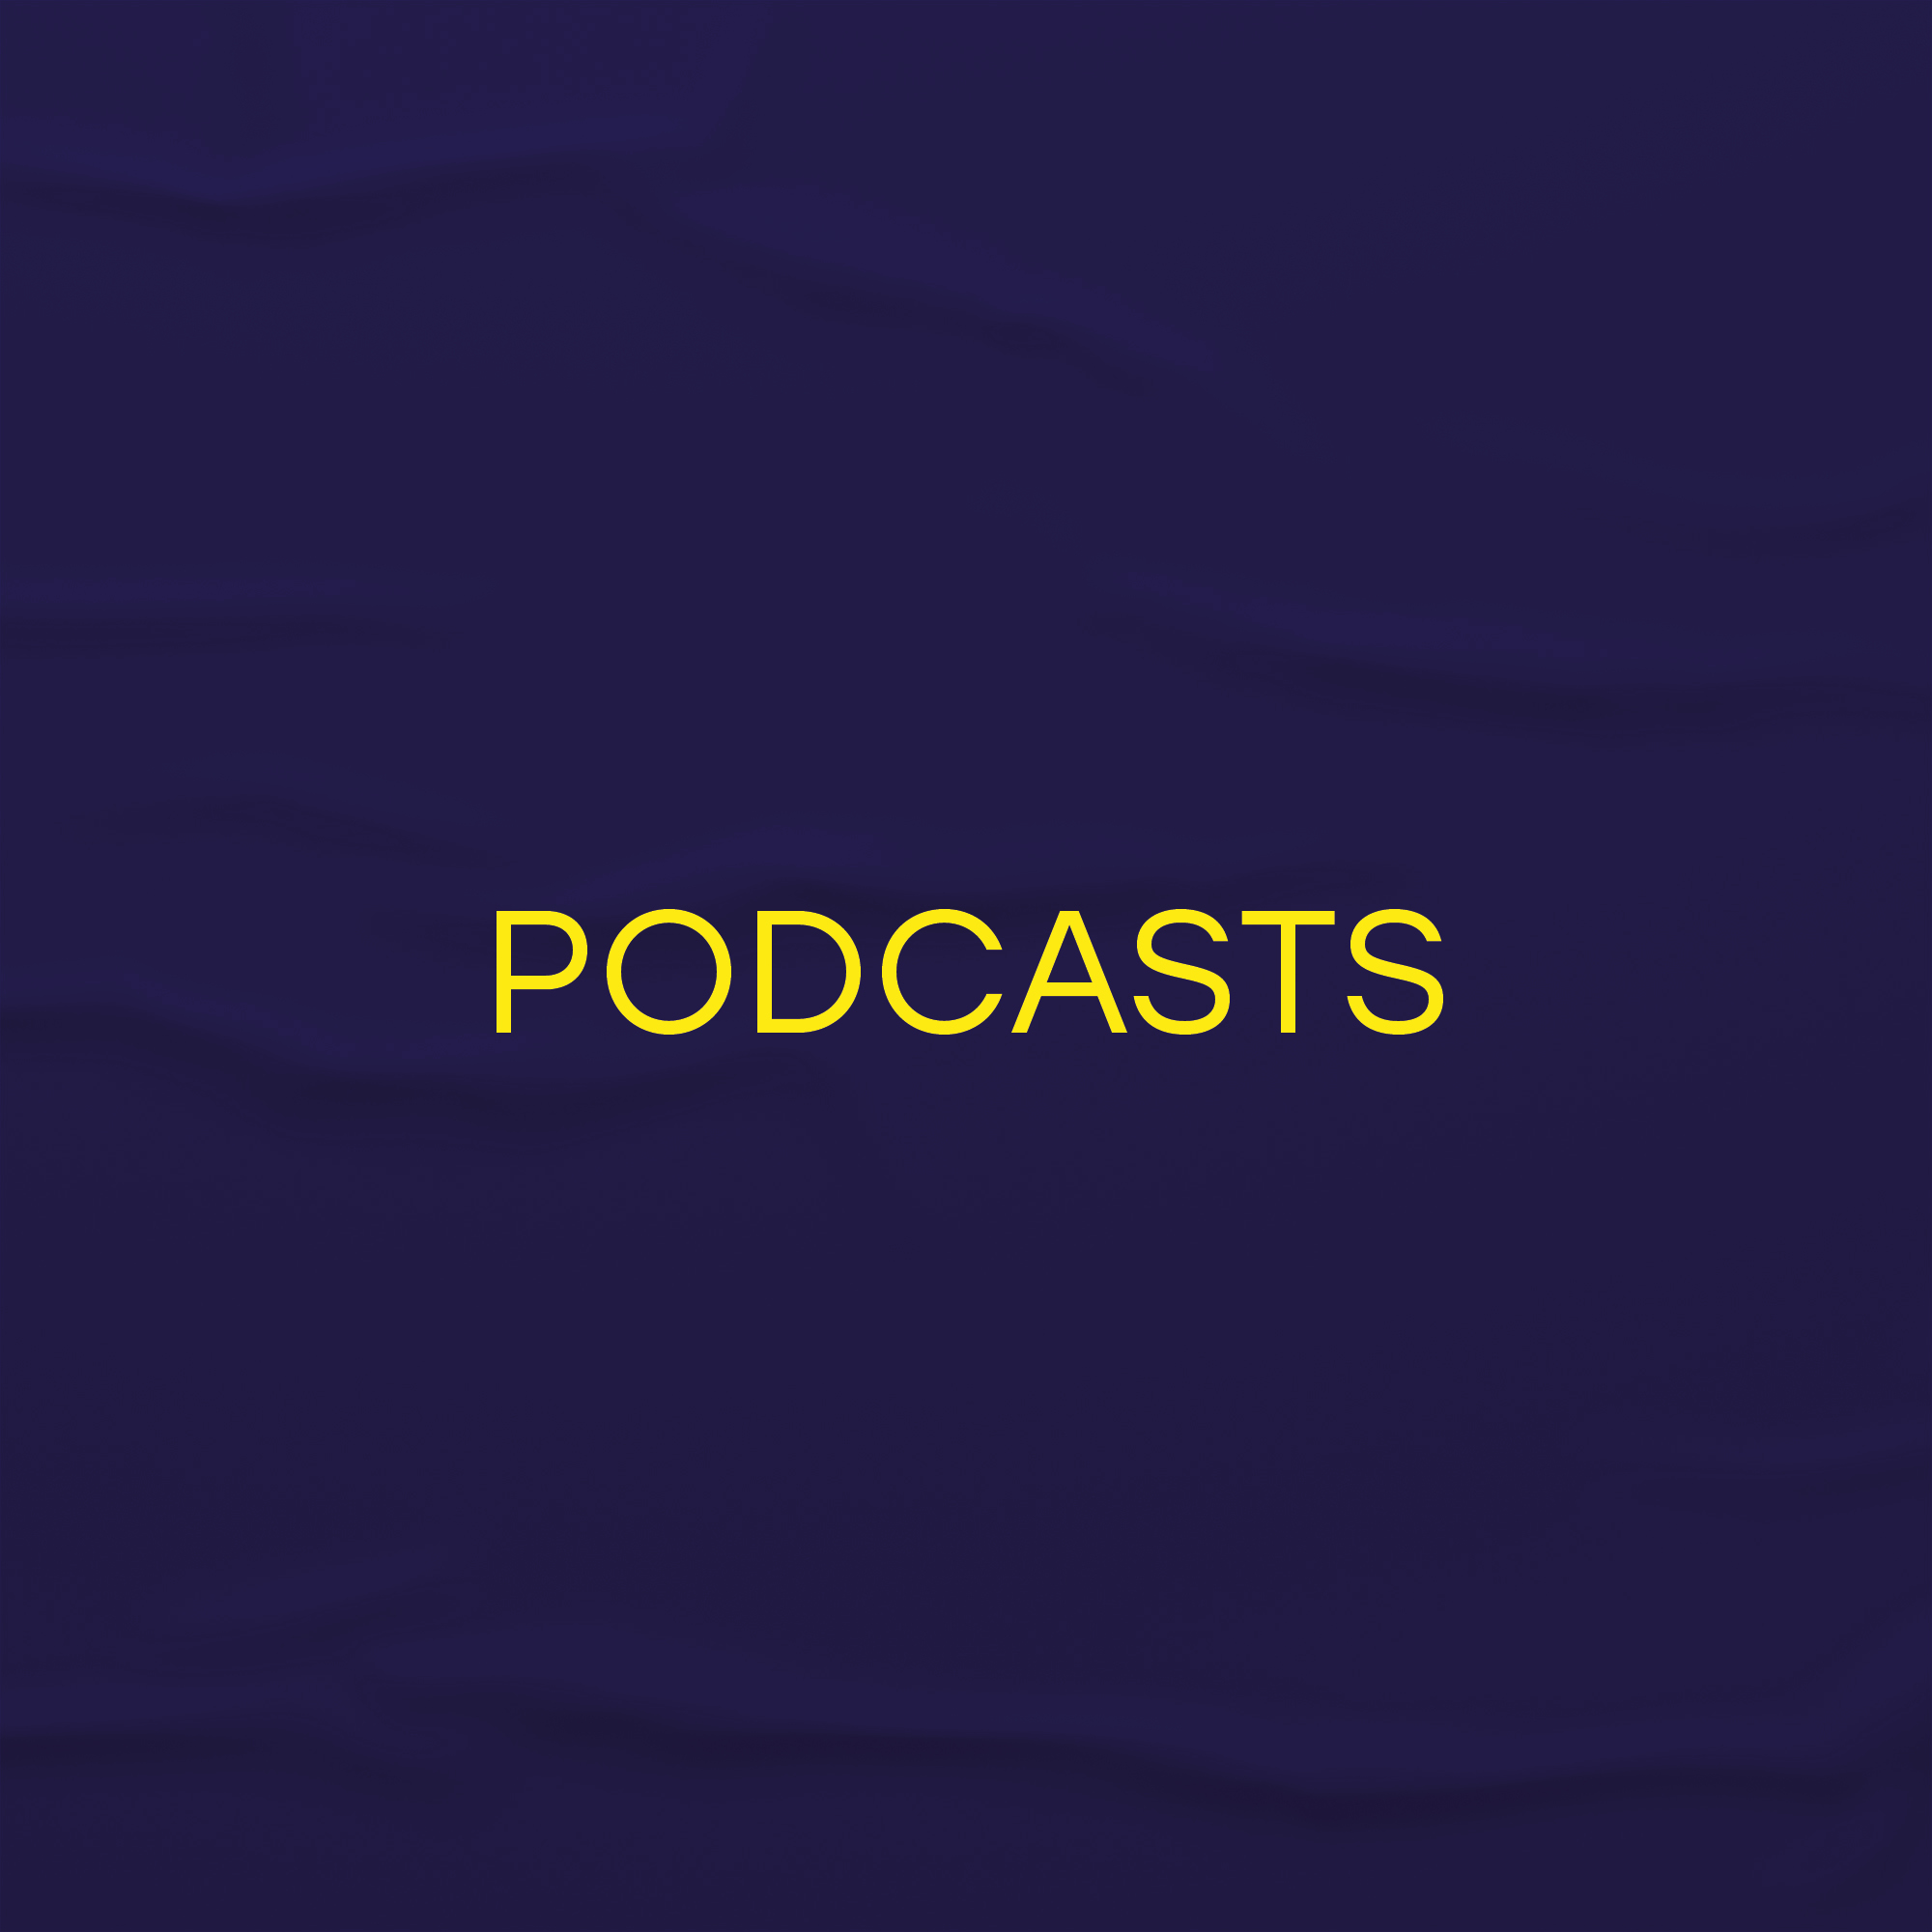 podcasts services icon